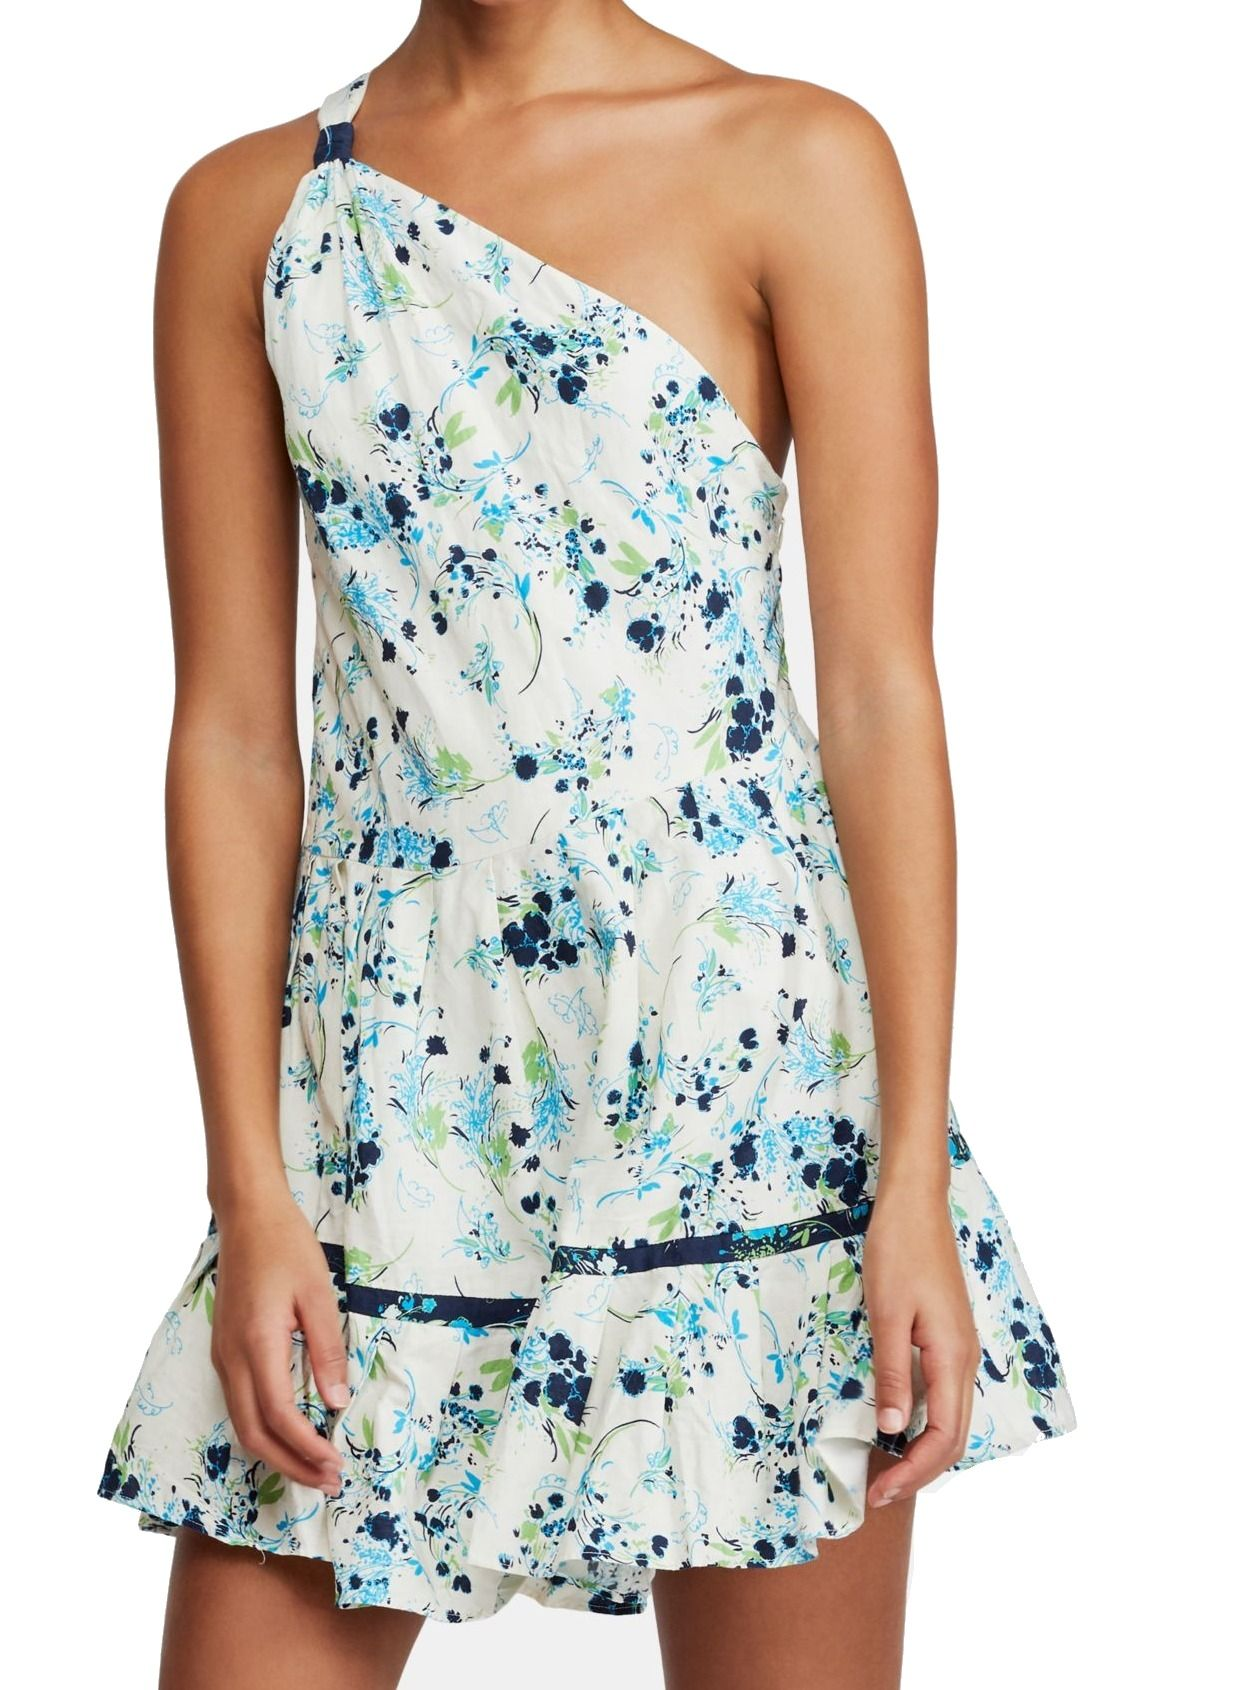 Free People Womens Dress White Size Small S A-Line Floral One-Shoulder